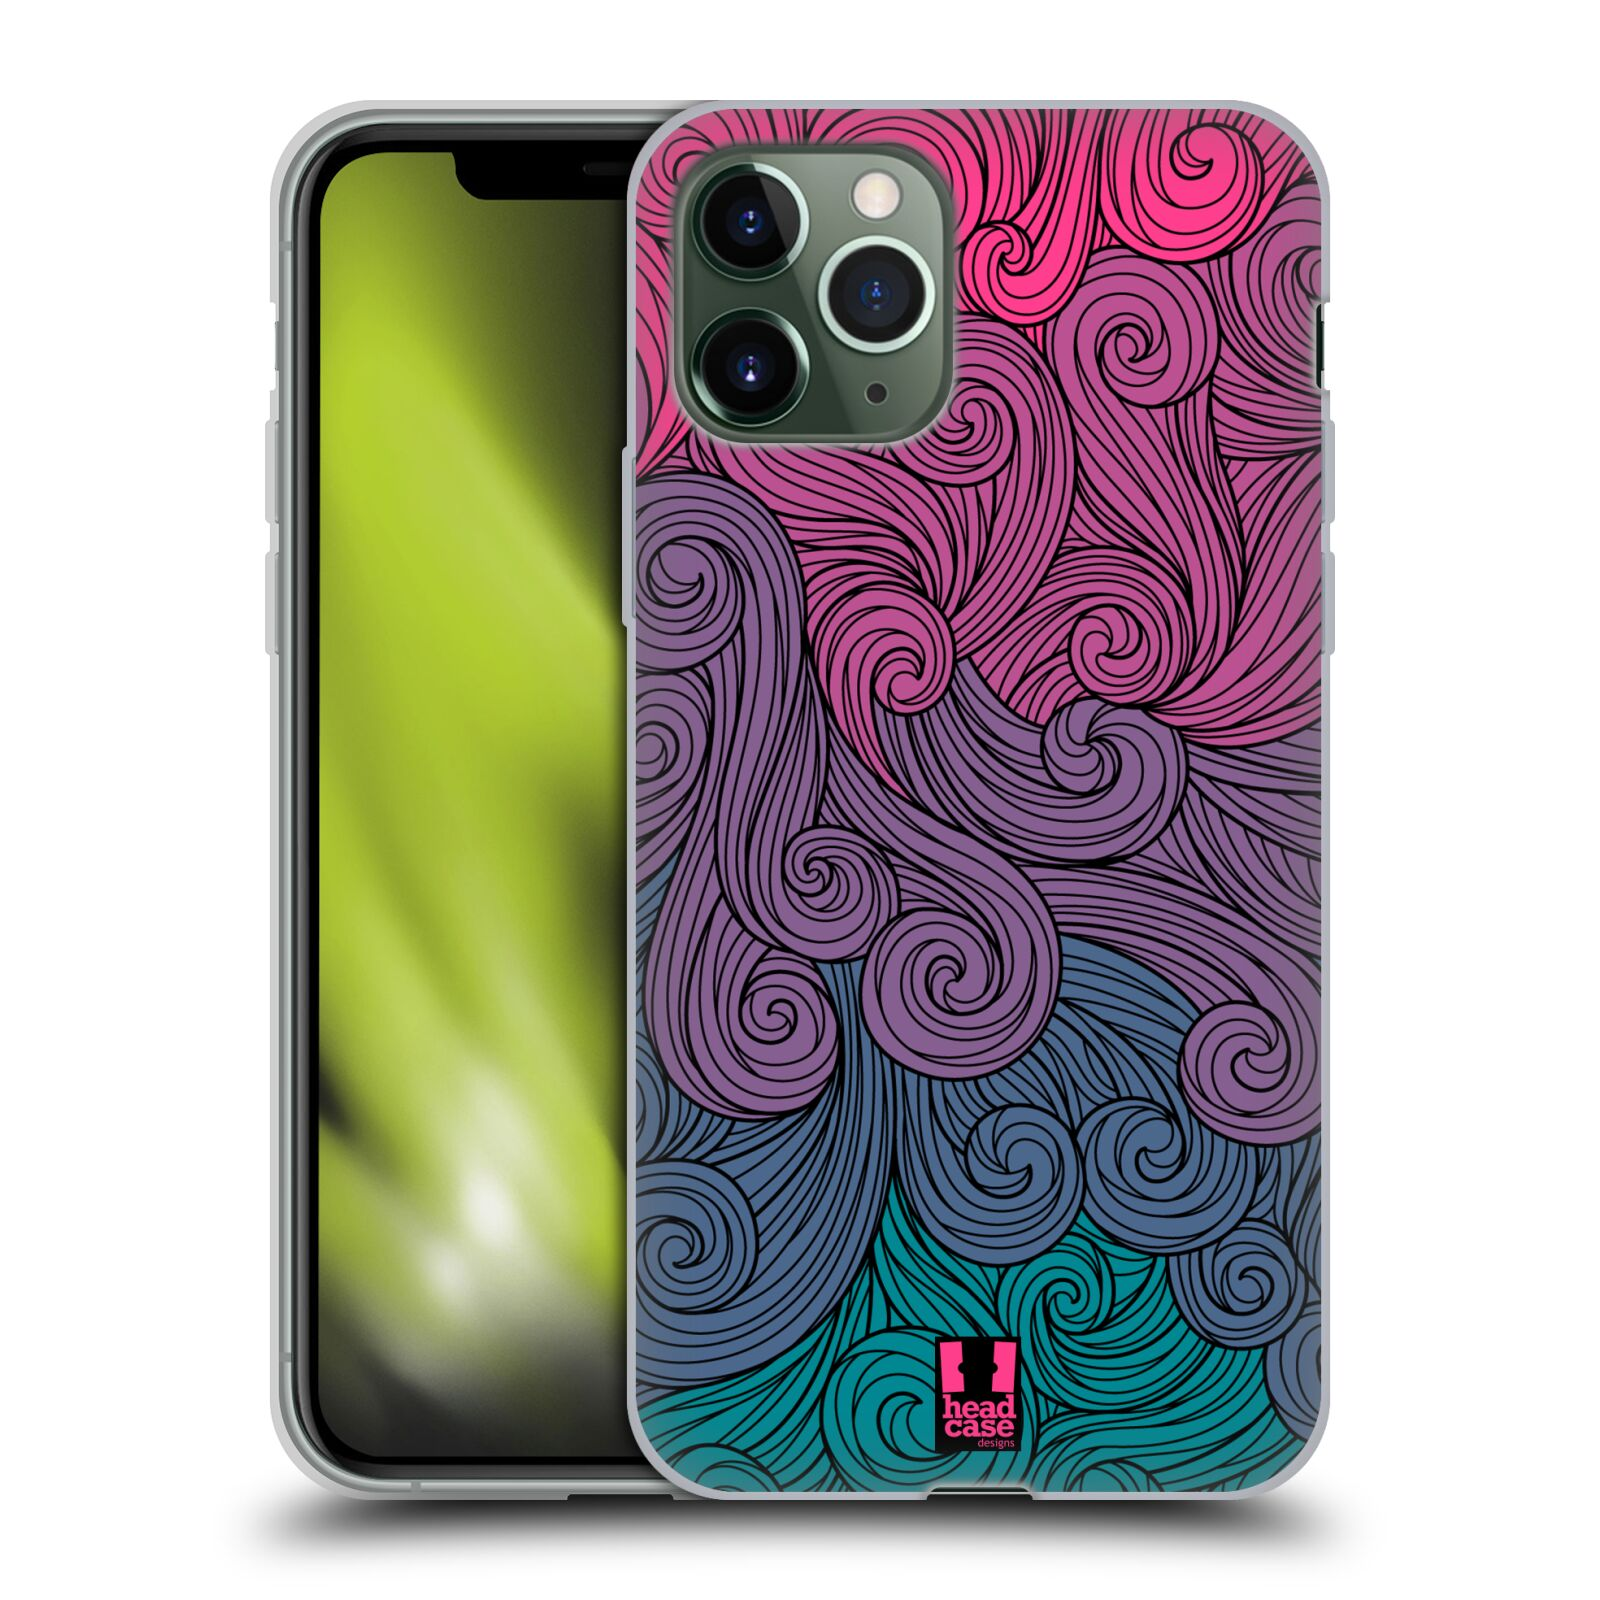 pouzdro guess na iphone 6 plus - Silikonové pouzdro na mobil Apple iPhone 11 Pro - Head Case - Swirls Hot Pink